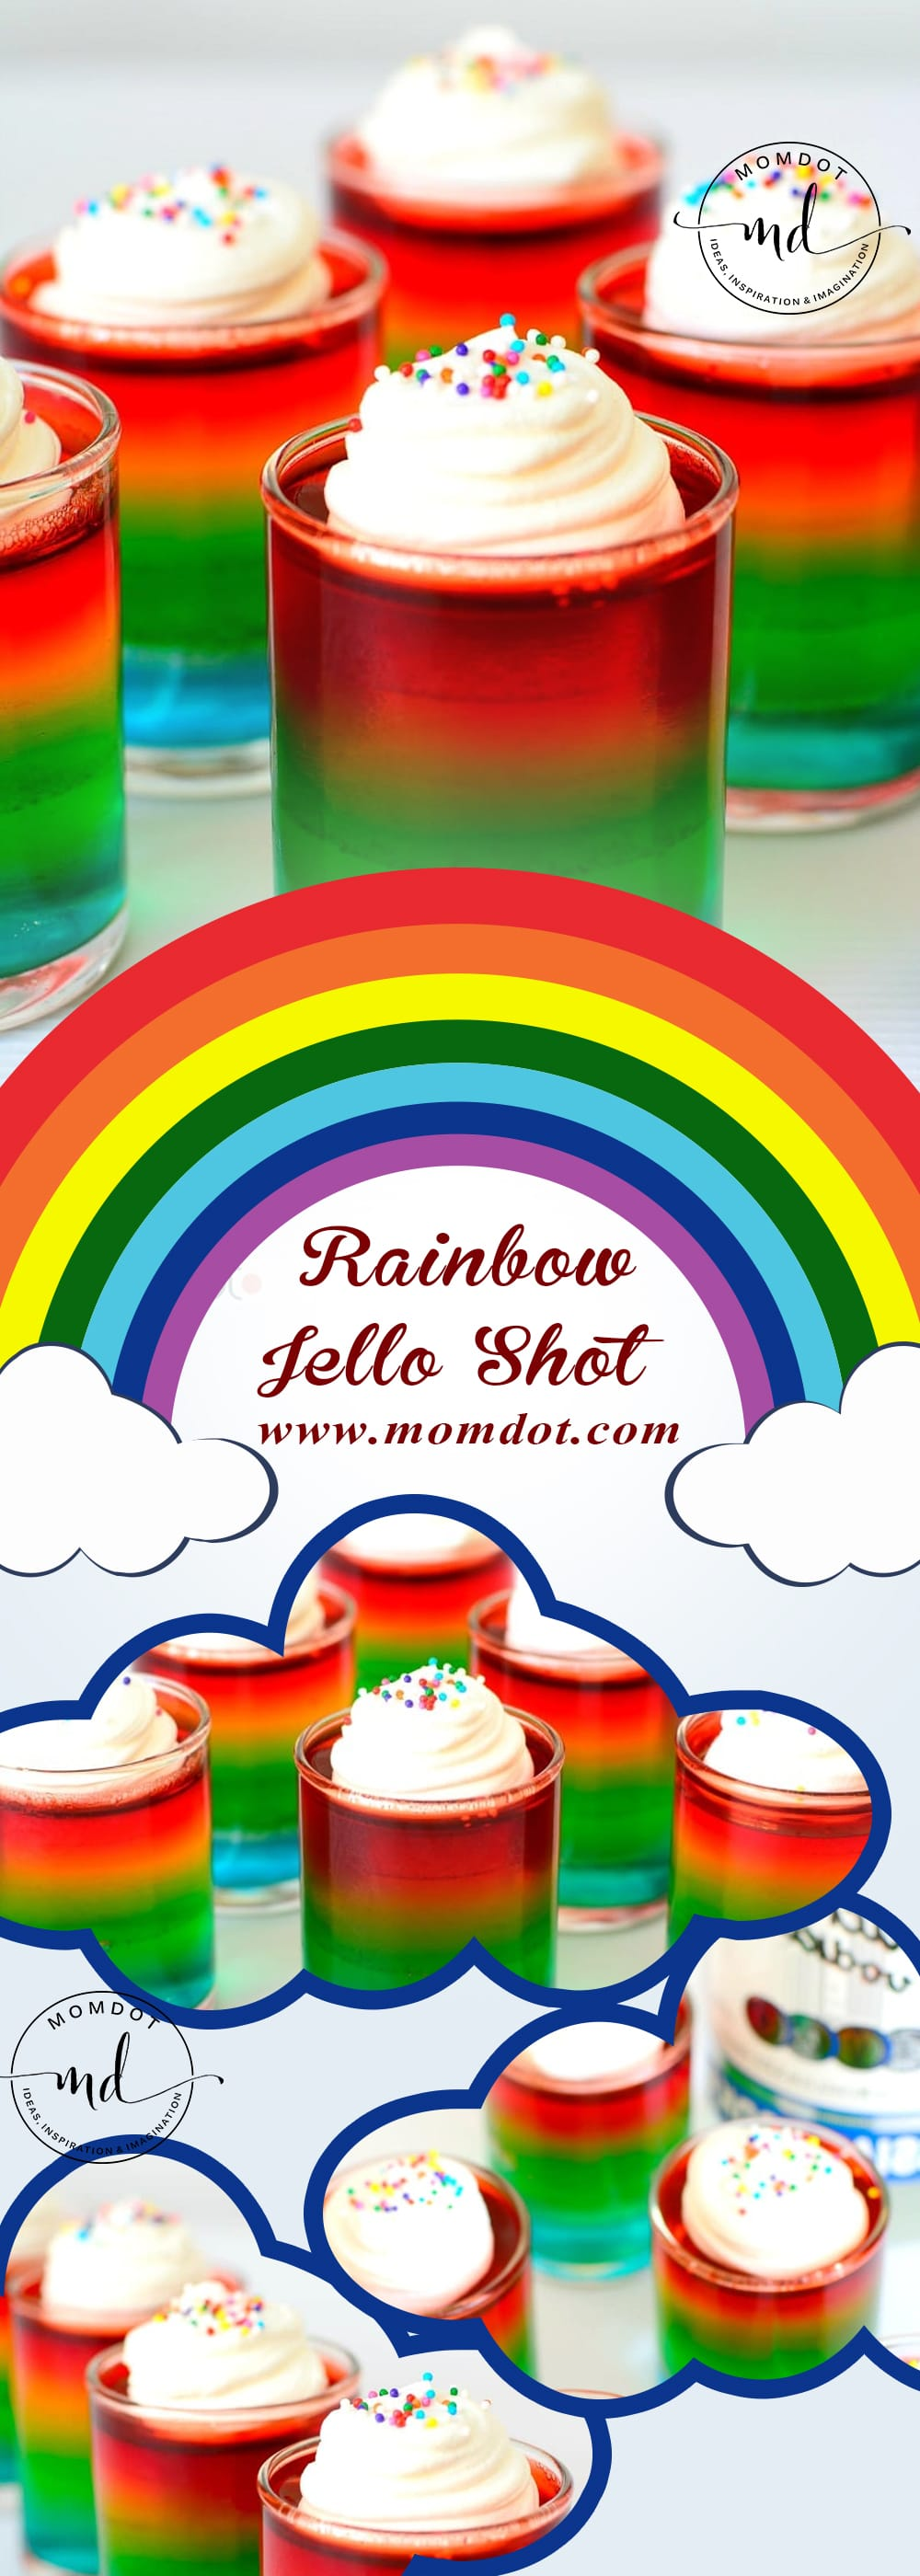 How To Make Rainbow Jello Shots -